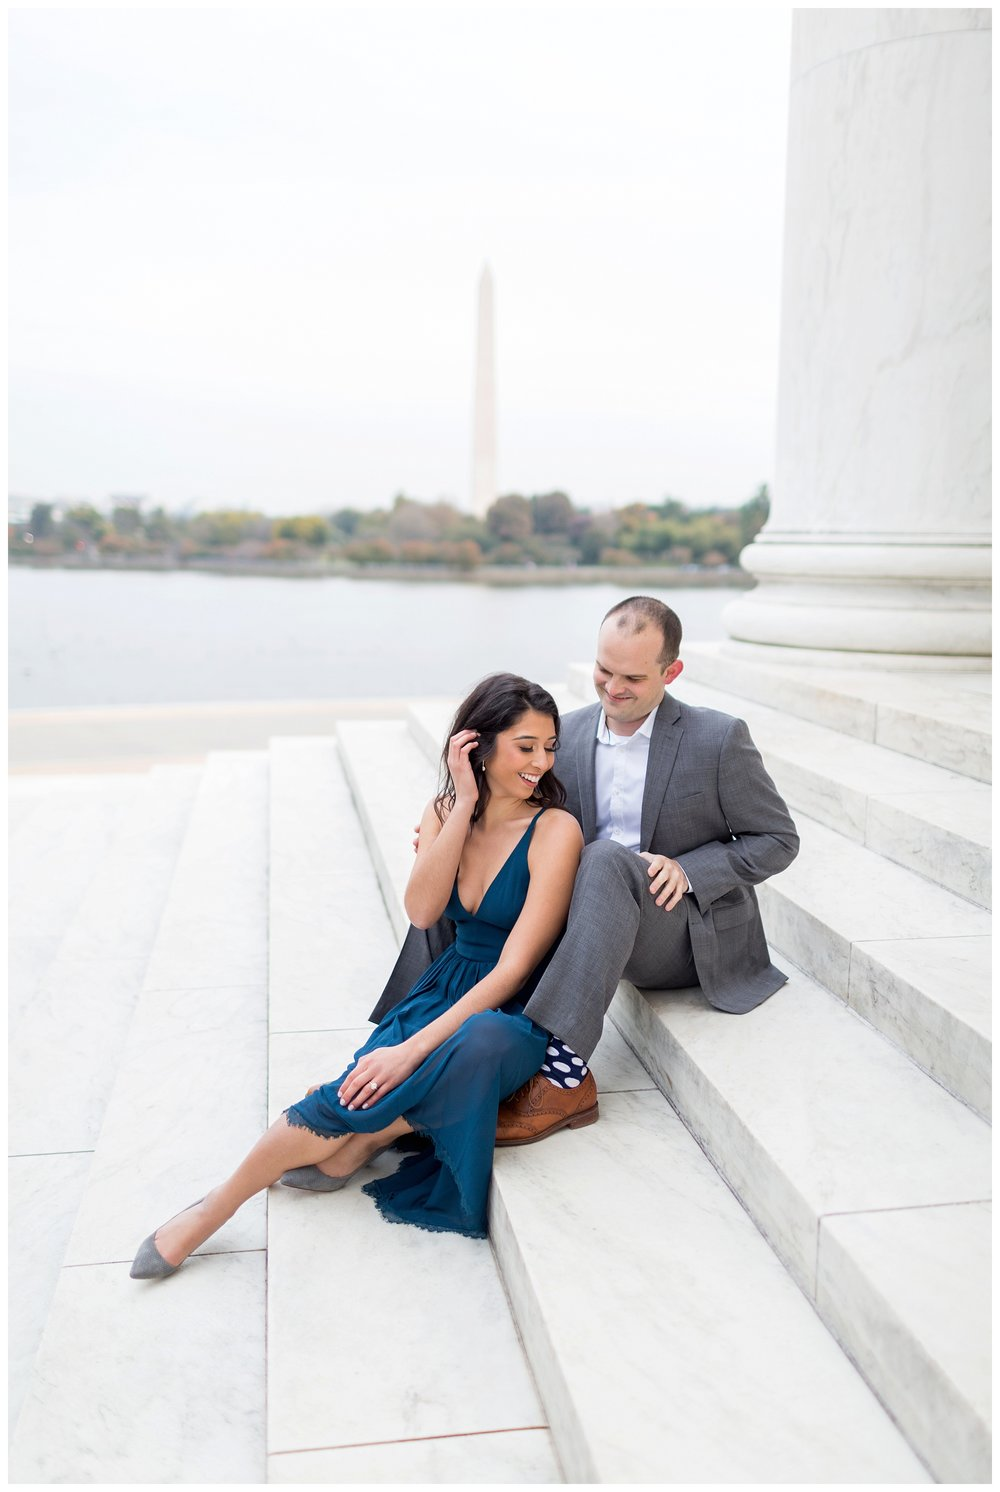 Washington DC Engagement Photos Kir Tuben_0009.jpg